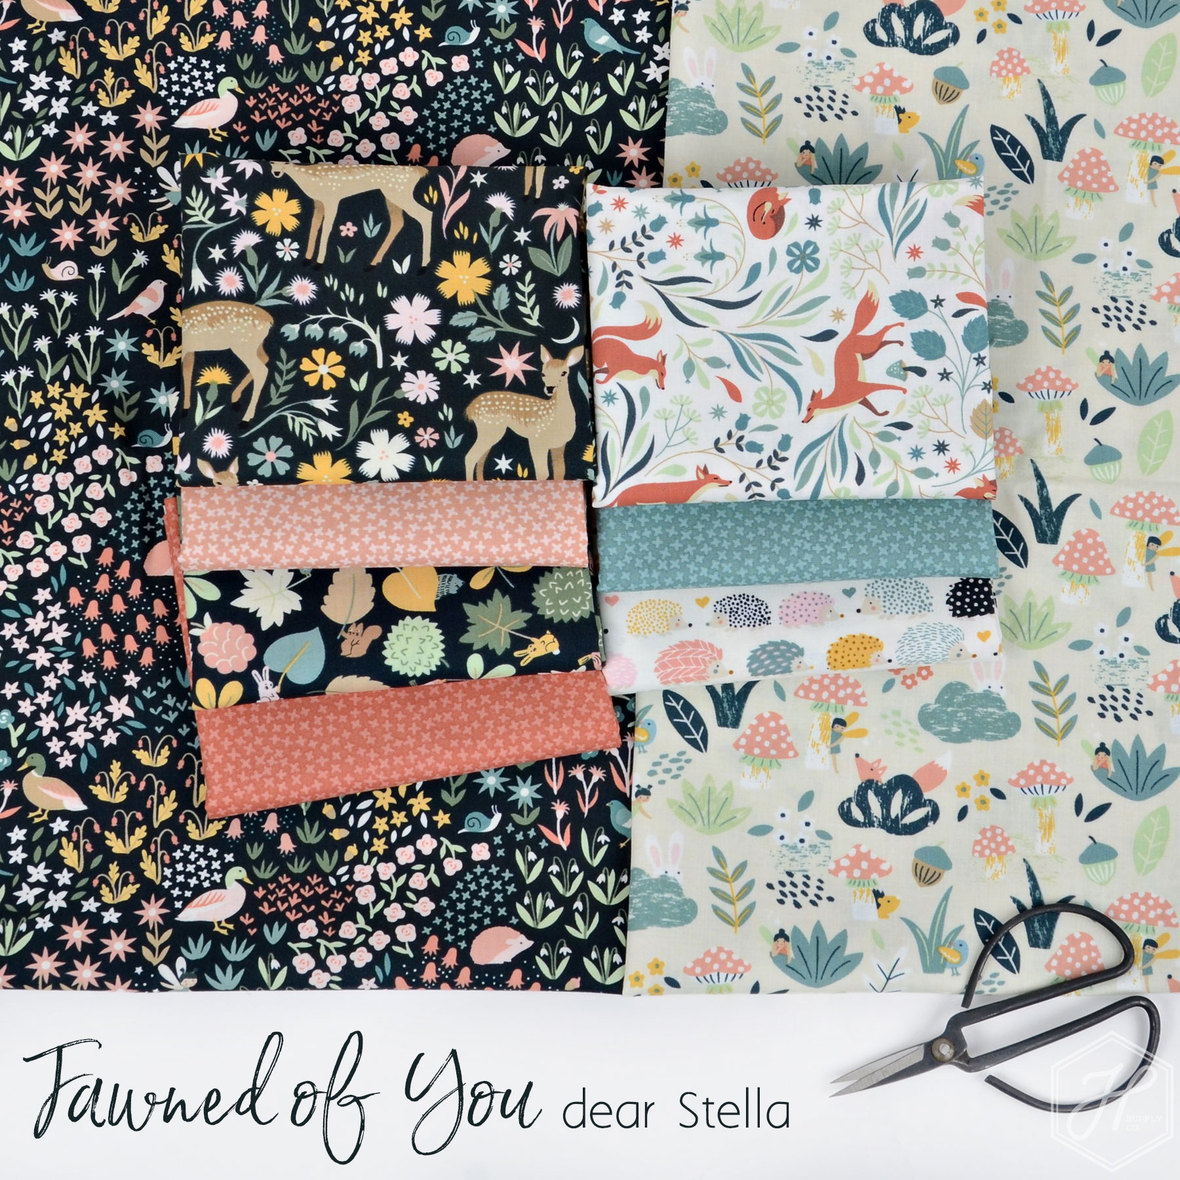 Fawned-of-You-fabric-Dear-Stella-at-Hawthorne-Supply-Co